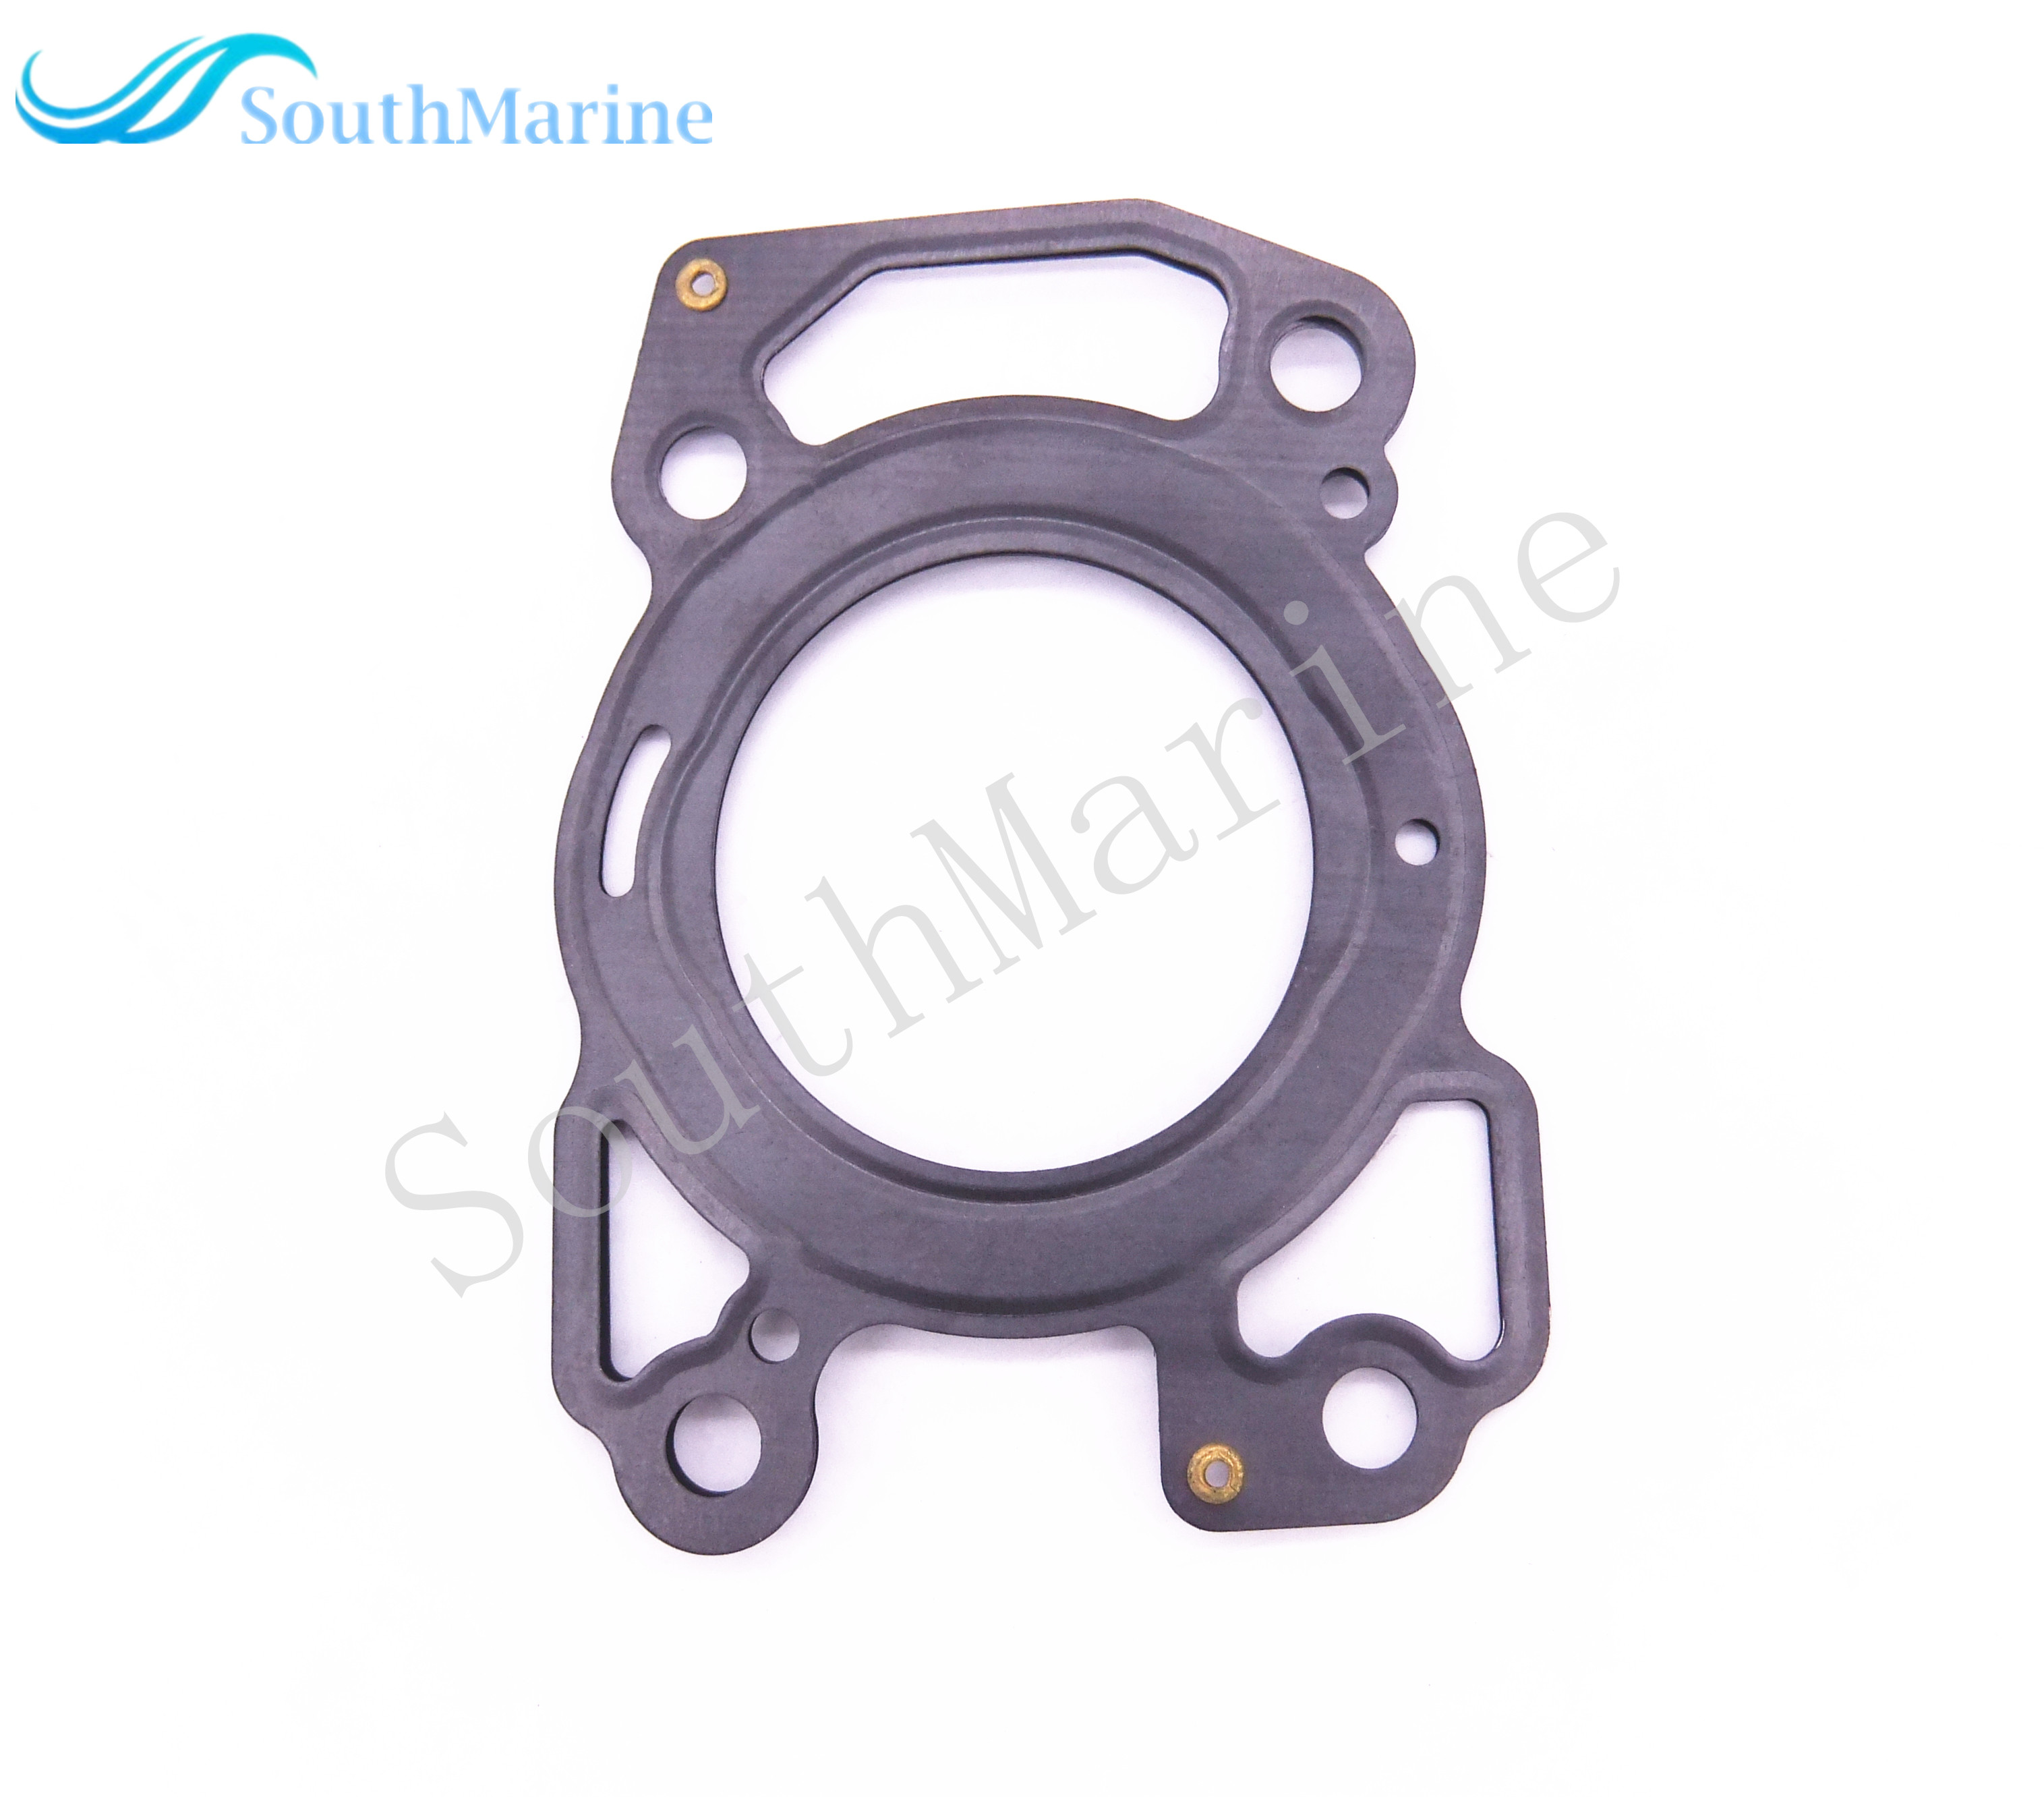 Outboard Engine F2.6-04000001 Cylinder Head Gasket For Parsun HDX 4-Stroke F2.6 Boat Motor Free Shipping